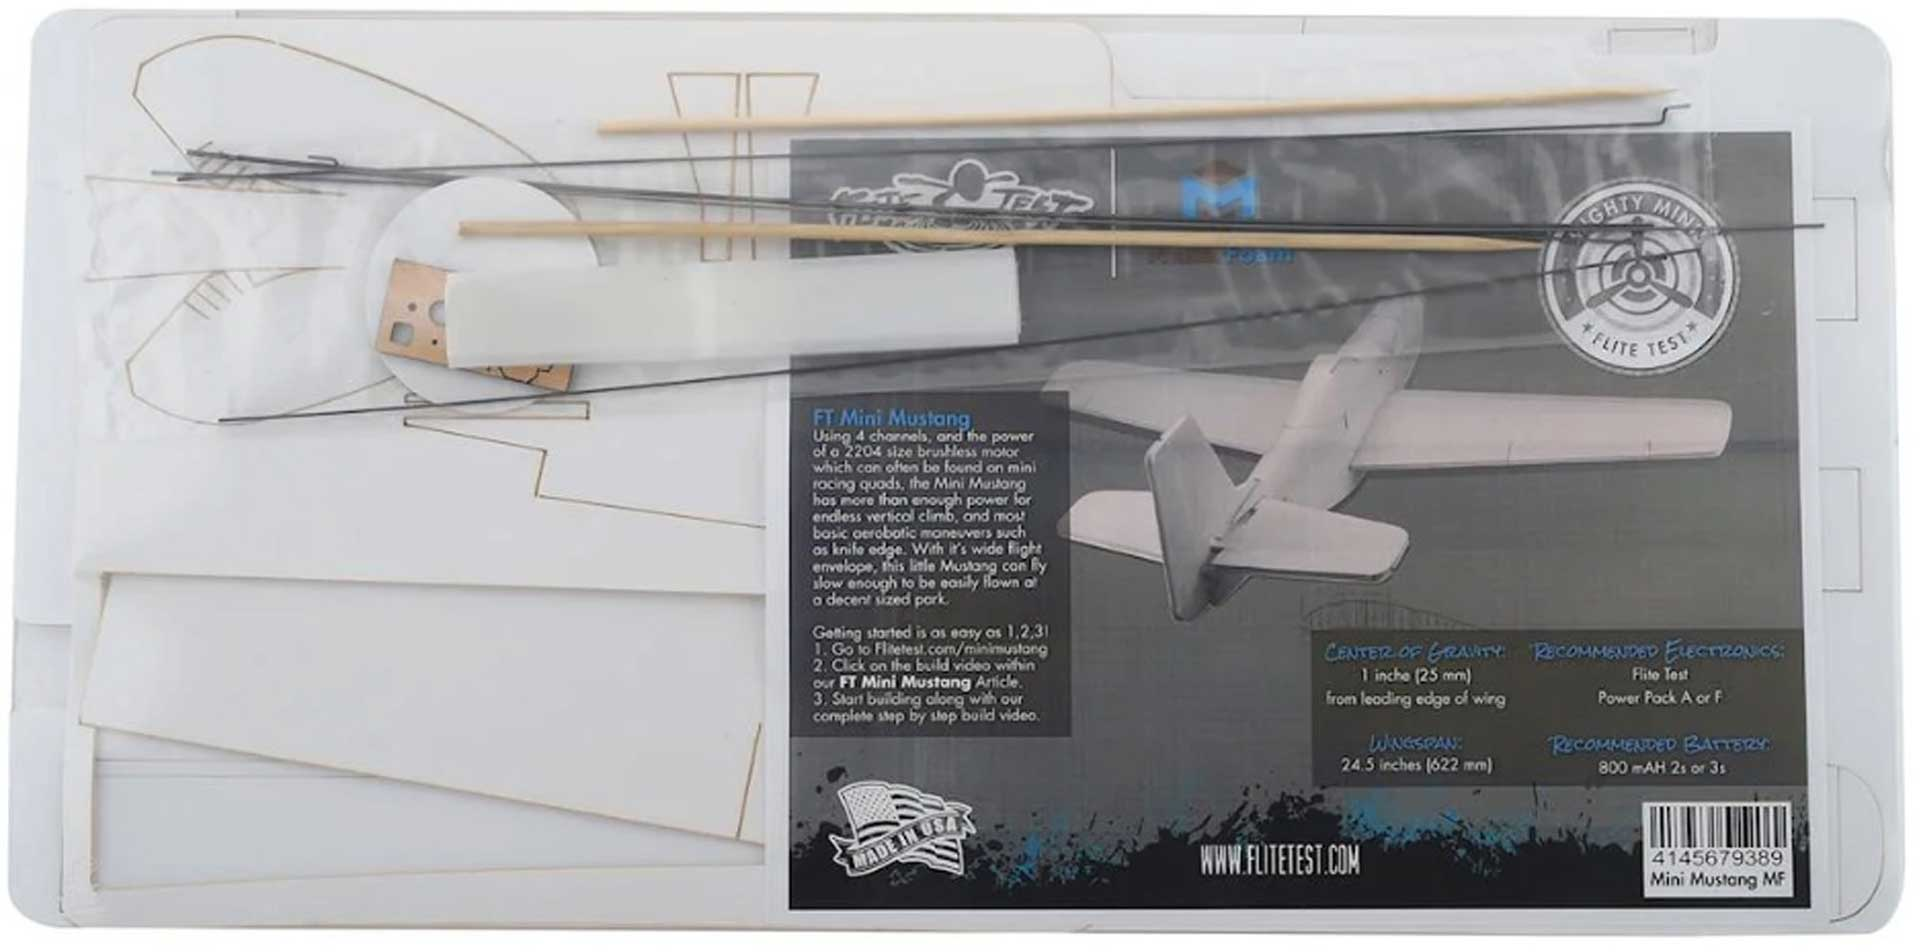 FLITE TEST Mini Mustang Kit Maker Foam 622mm